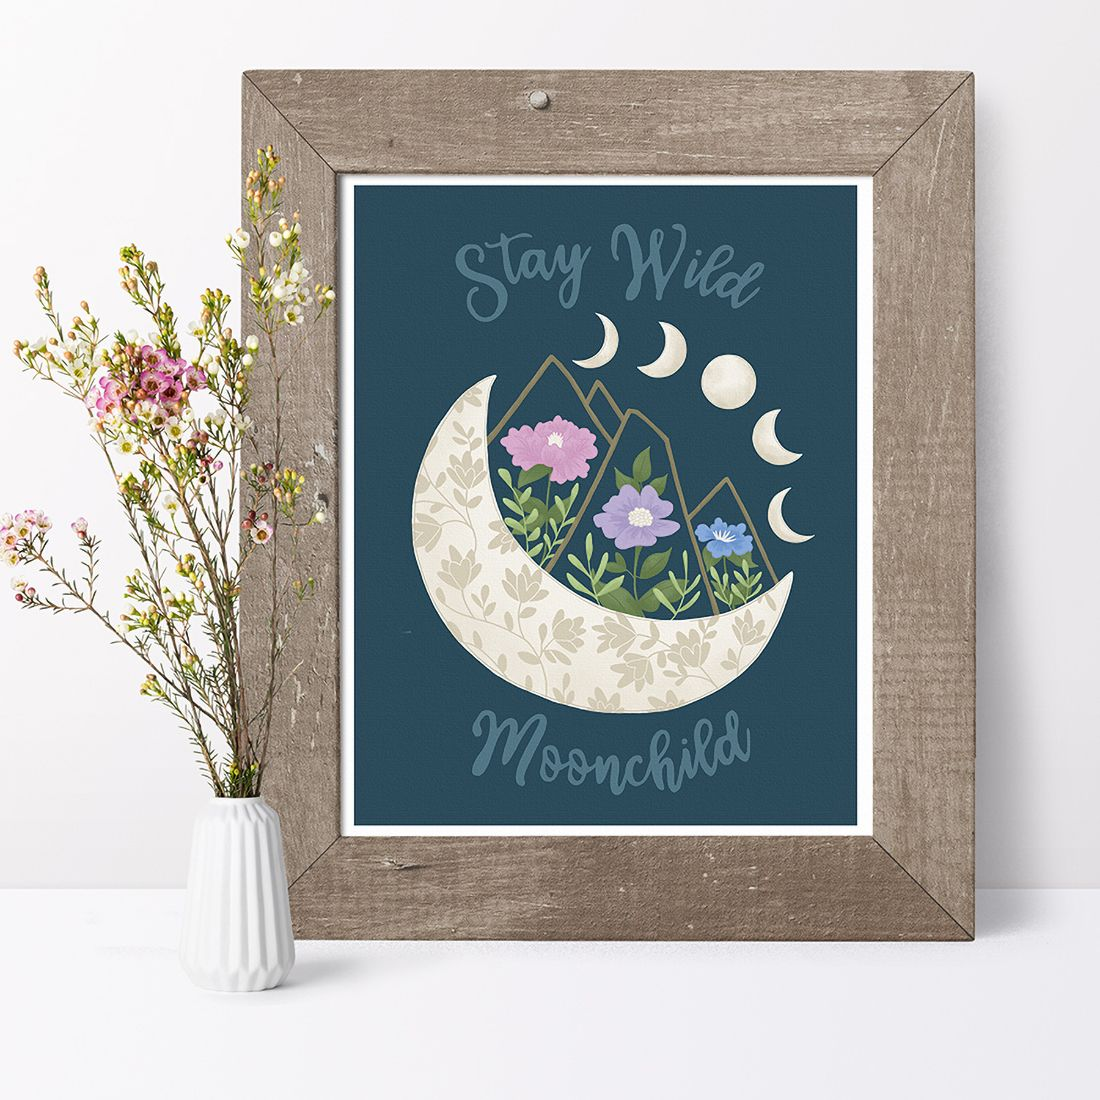 Stay Wild Moonchild Art Print